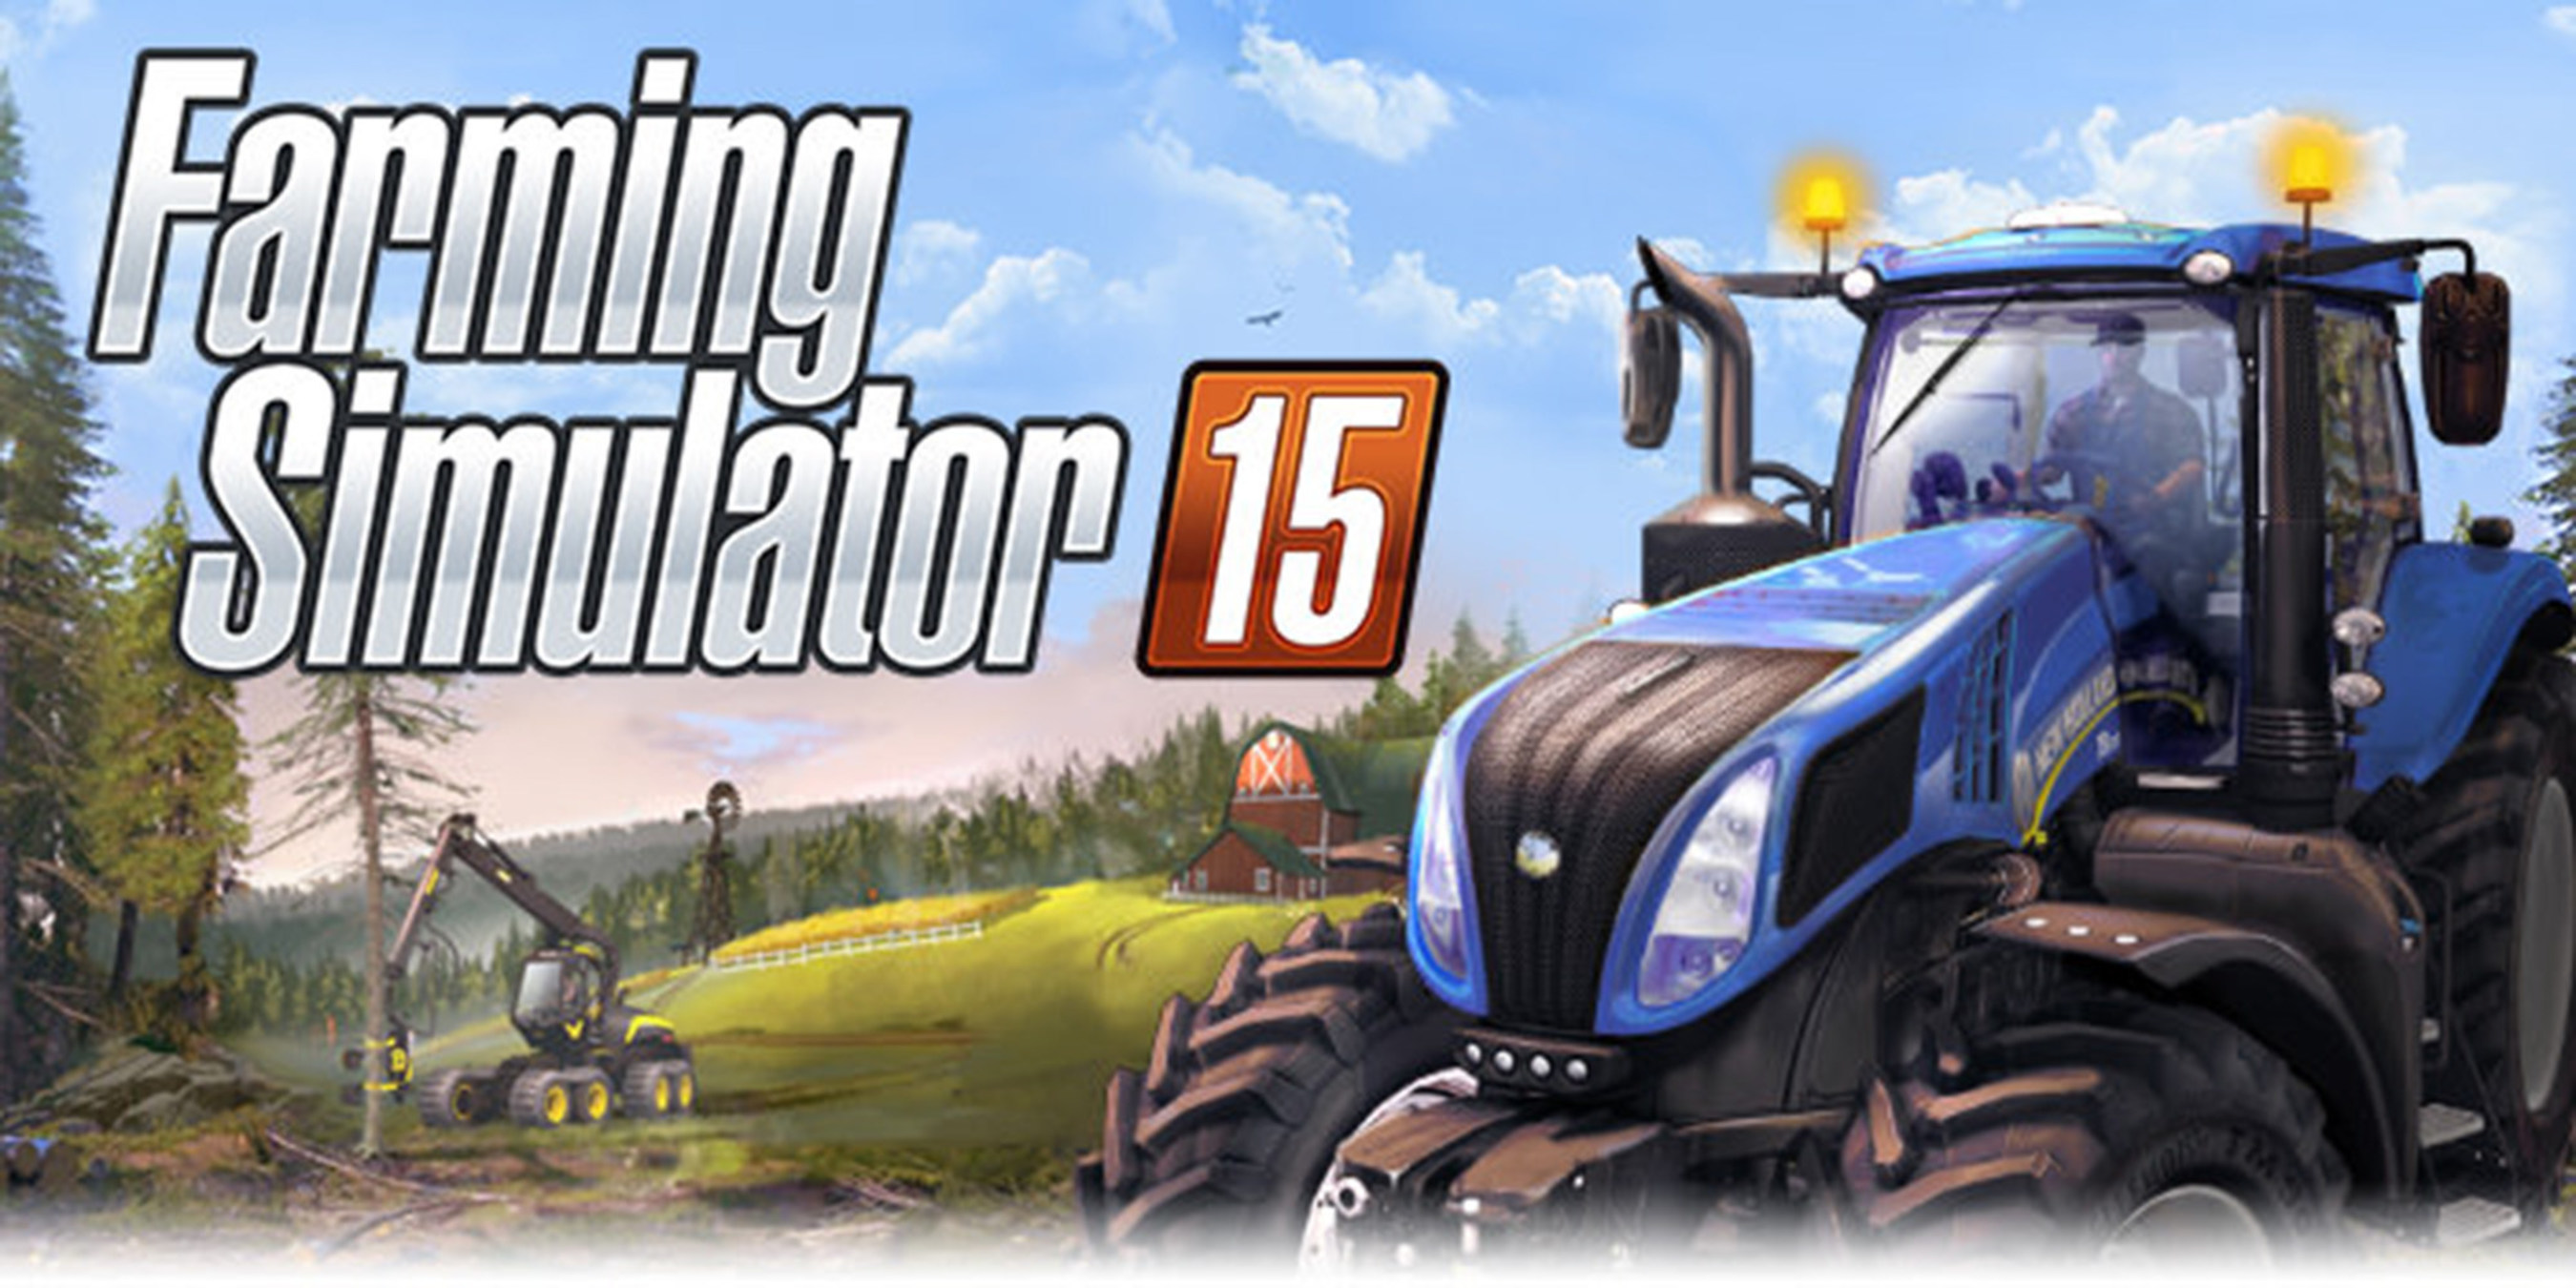 Farming Simulator 15 on Consoles: The Multiplayer Trailer